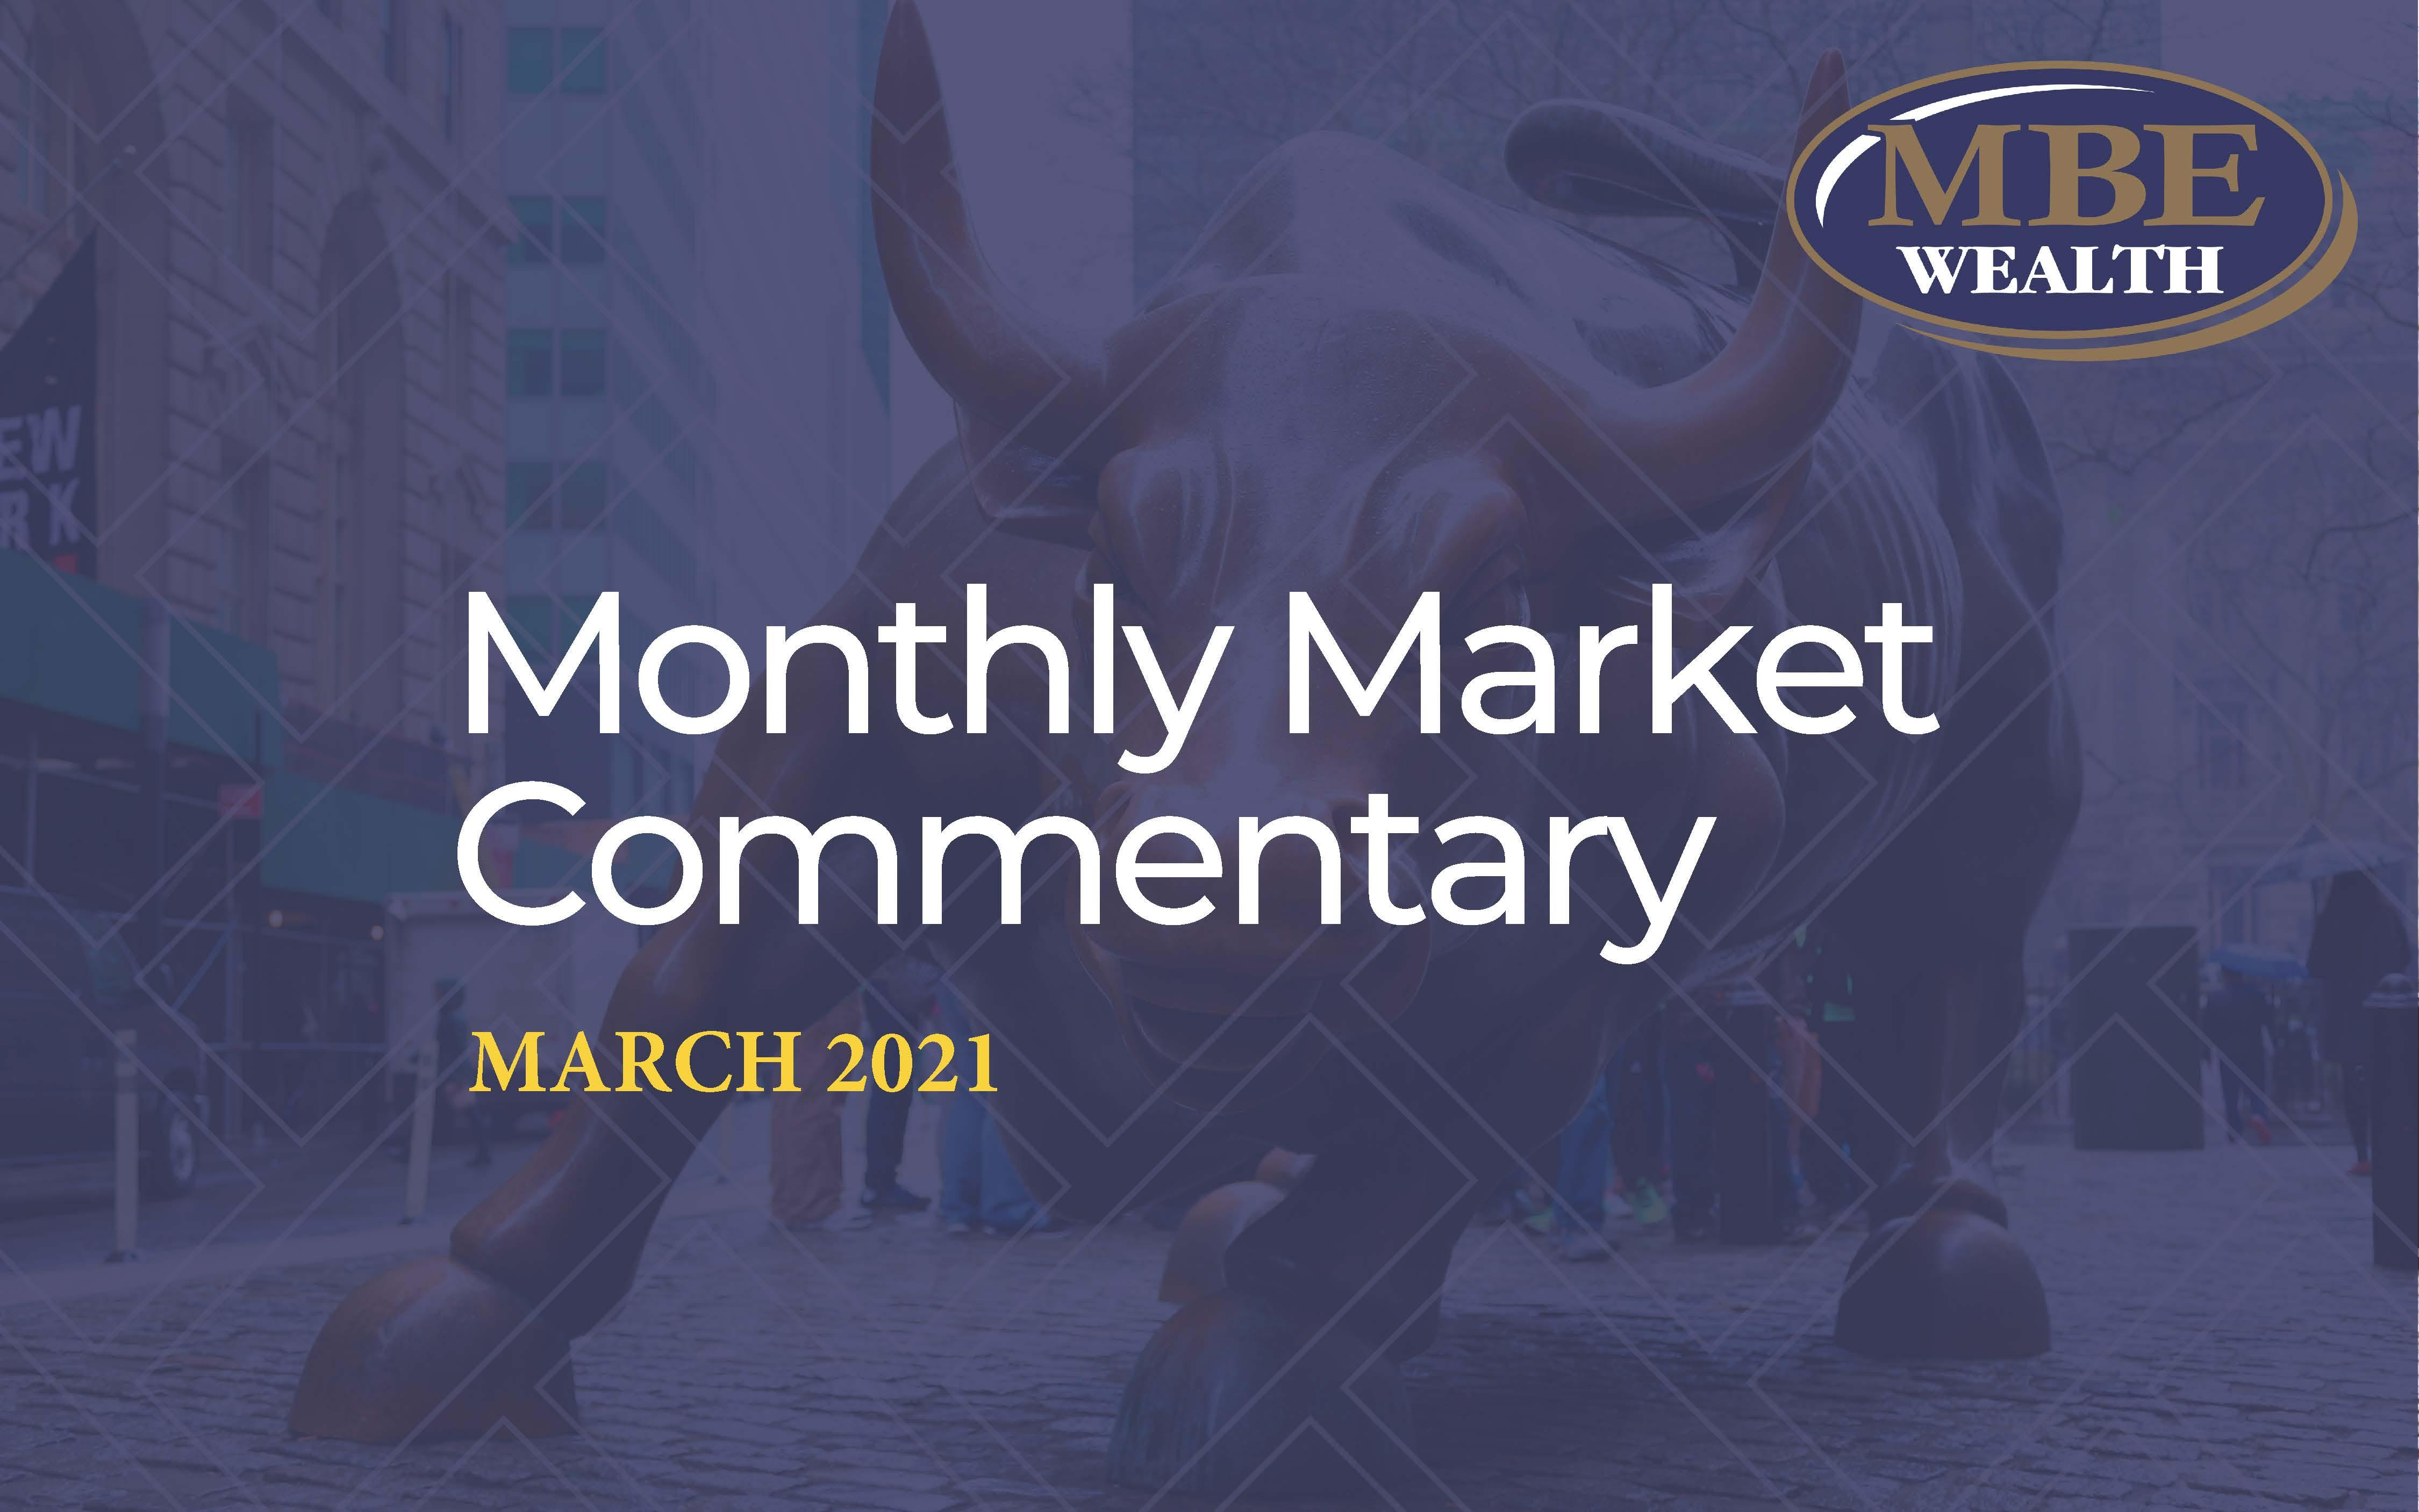 March 2021 MBE Wealth Market Commentary Thumbnail